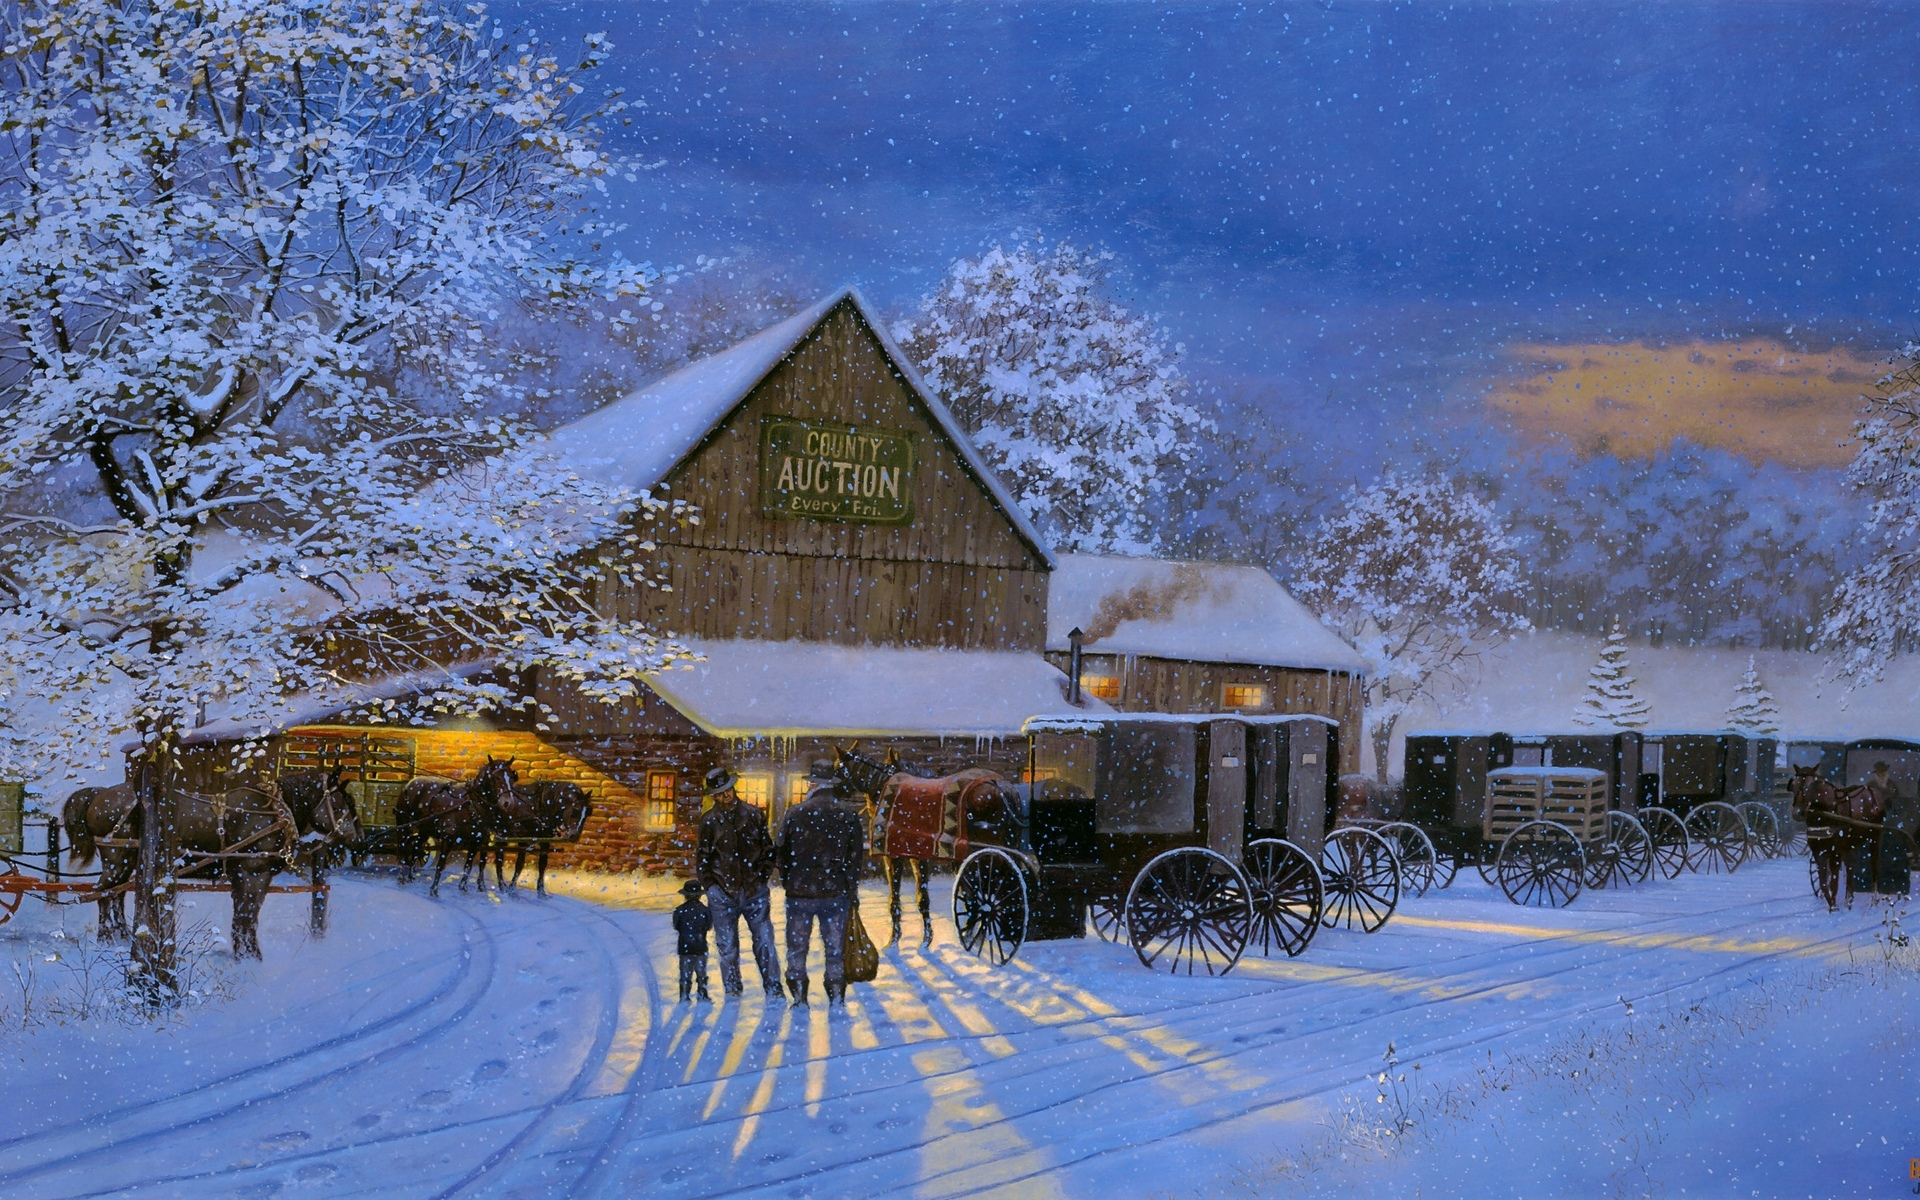 Horses Dave barnhouse painting winter wallpaper | 1920x1200 | 70060 1655